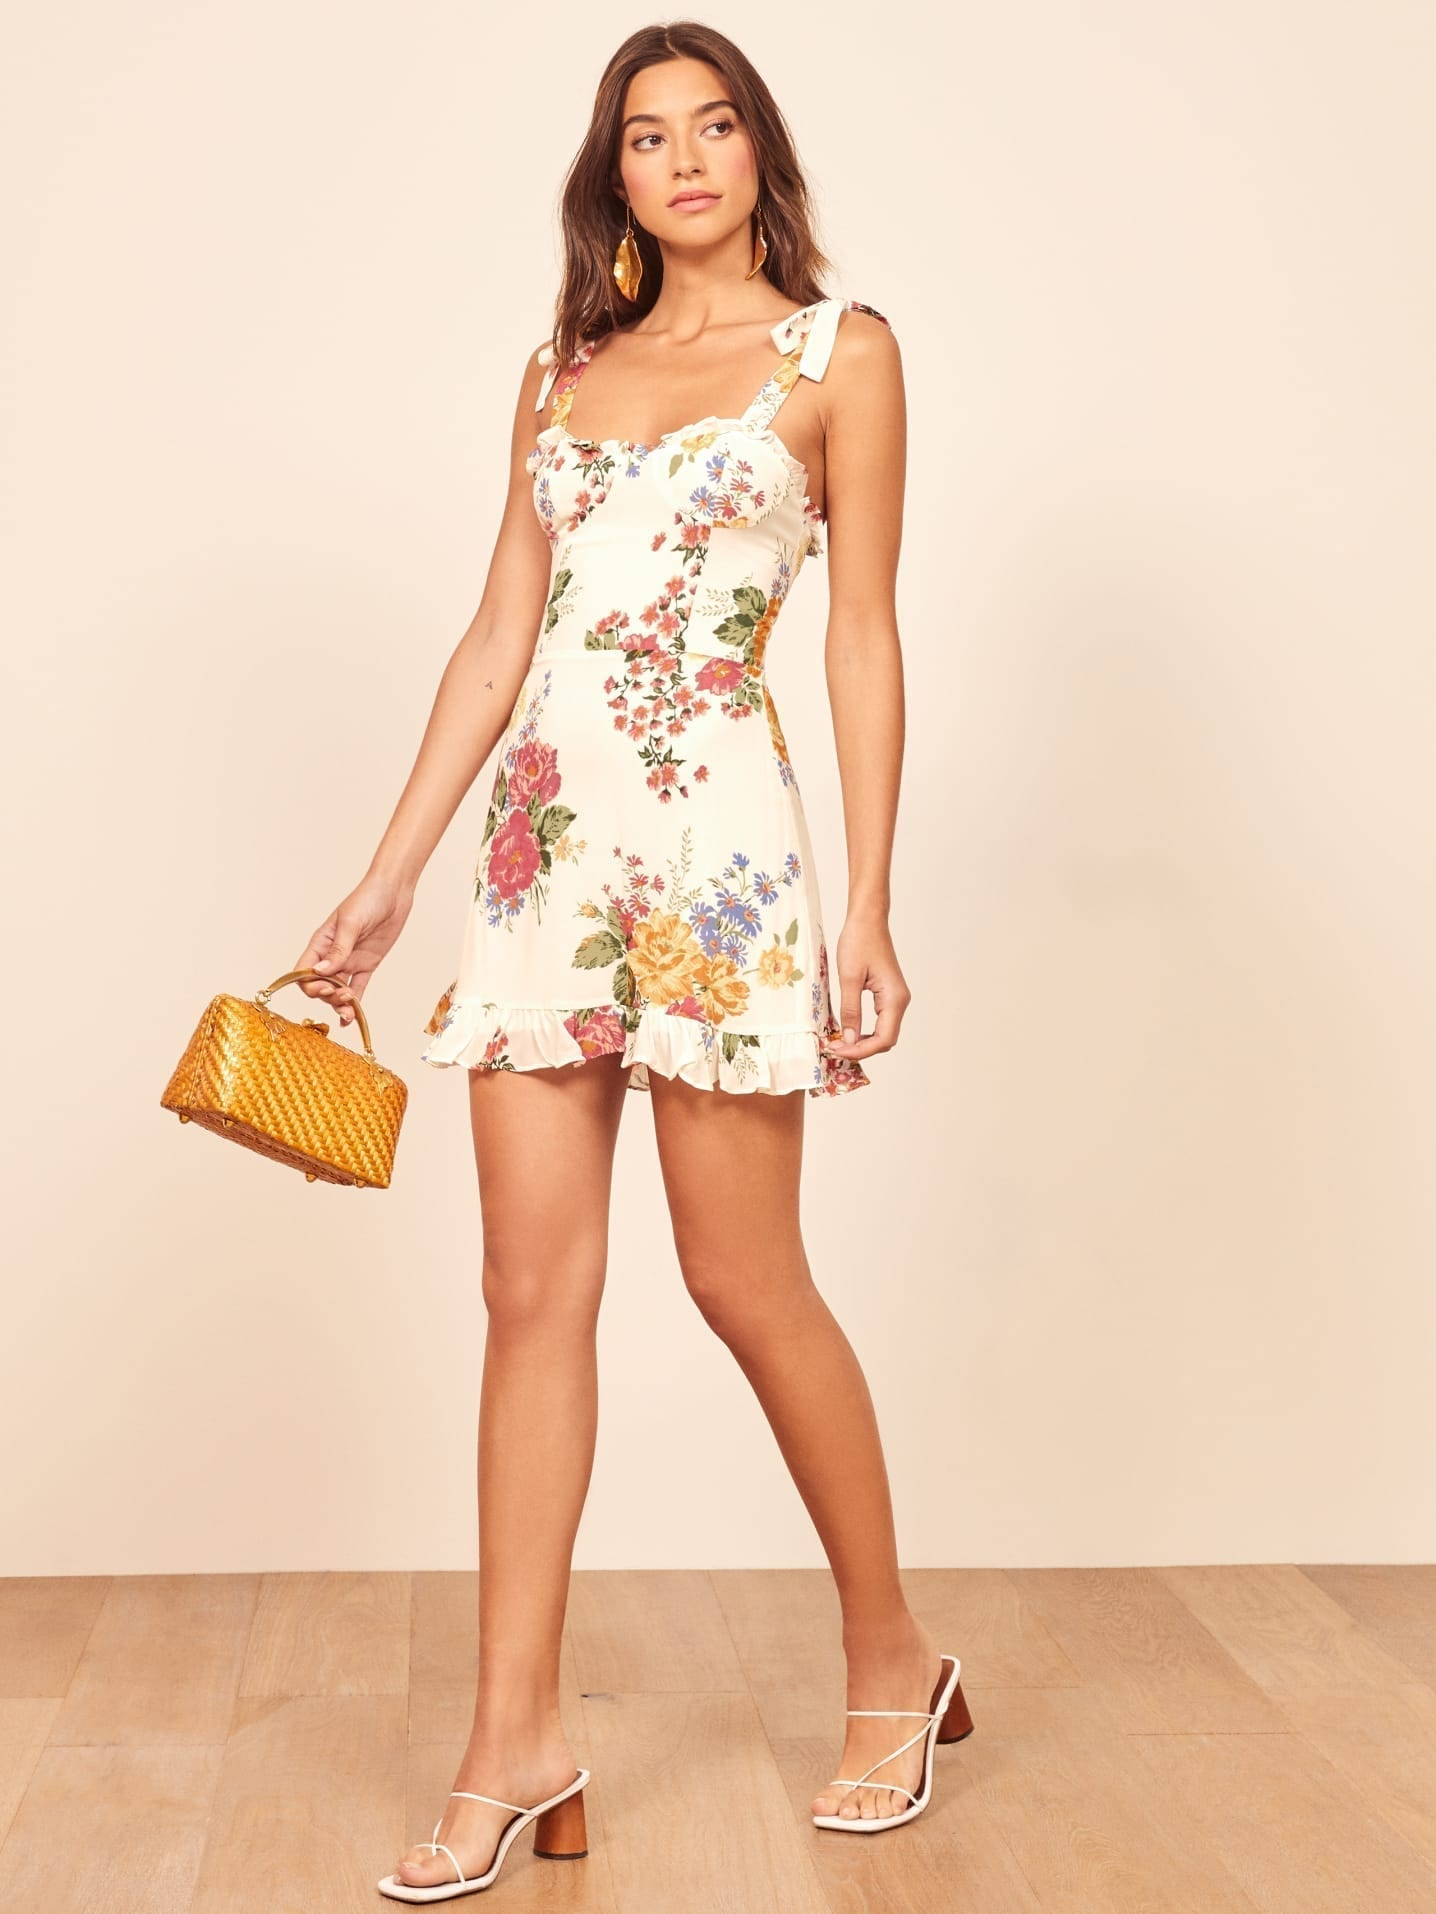 THEREFORMATION Christine White Dress